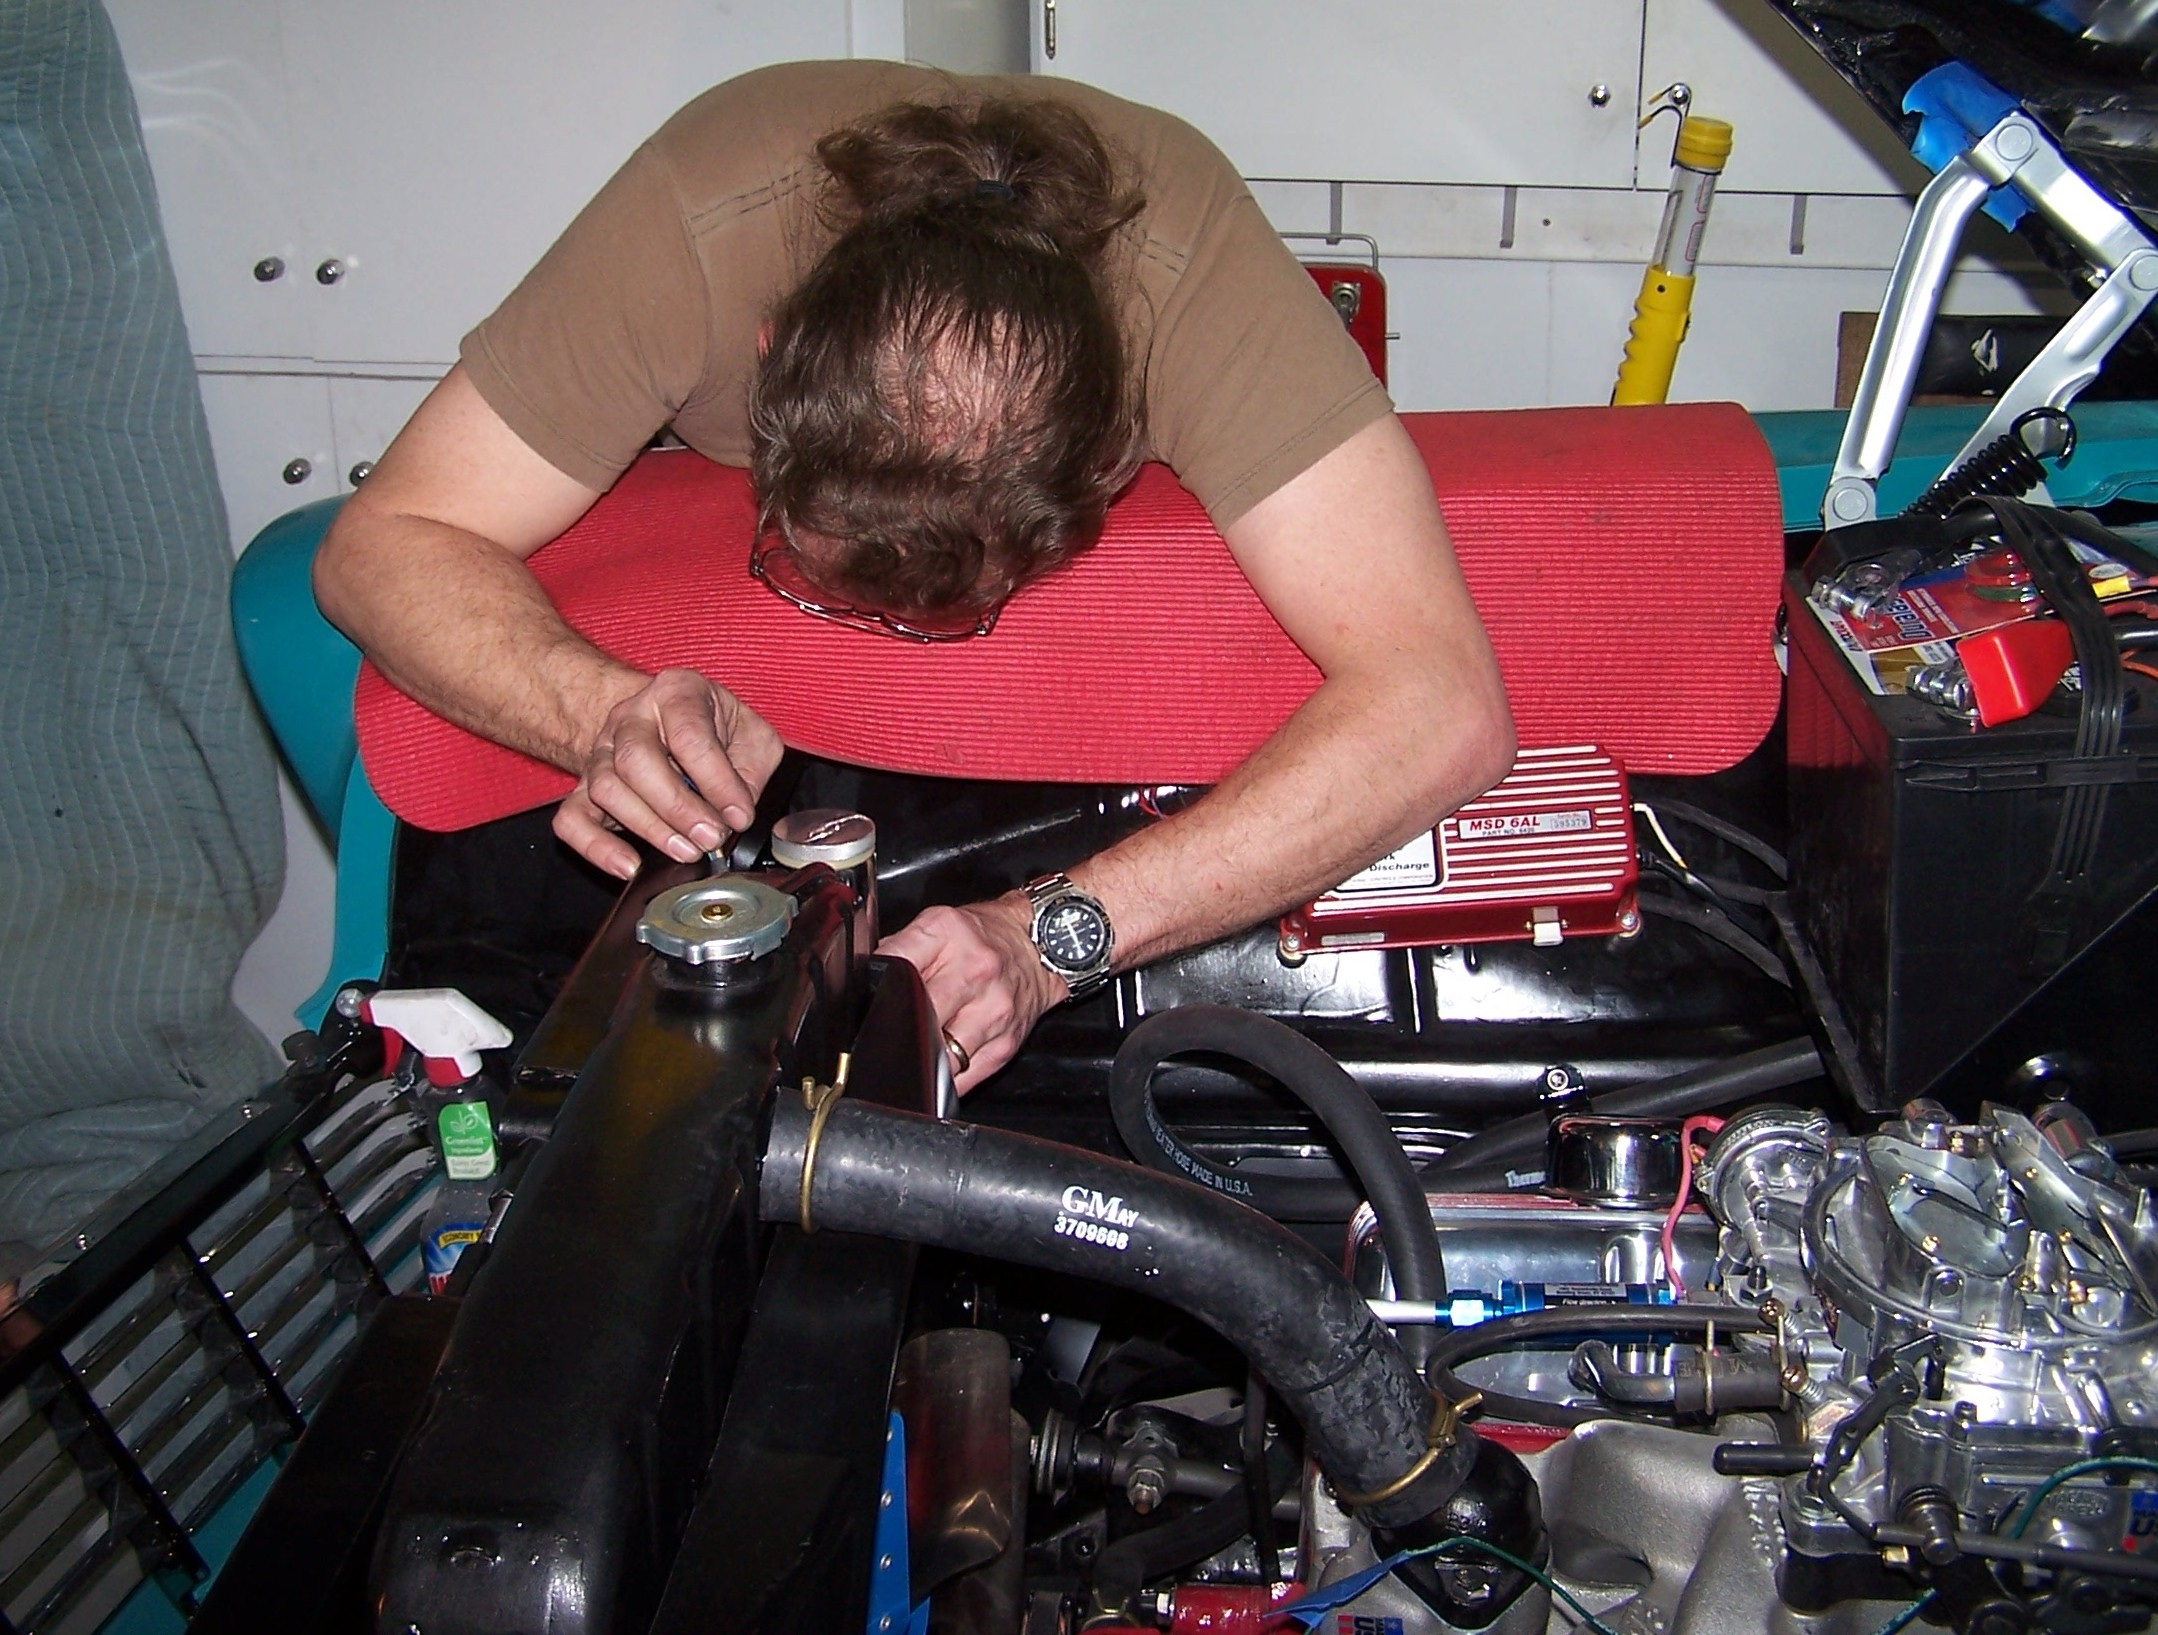 Wagon Wiring Harness And Front Fenders Muscle Car Time To Install The Radiator Overflow Tube Required By Most Drag Strips